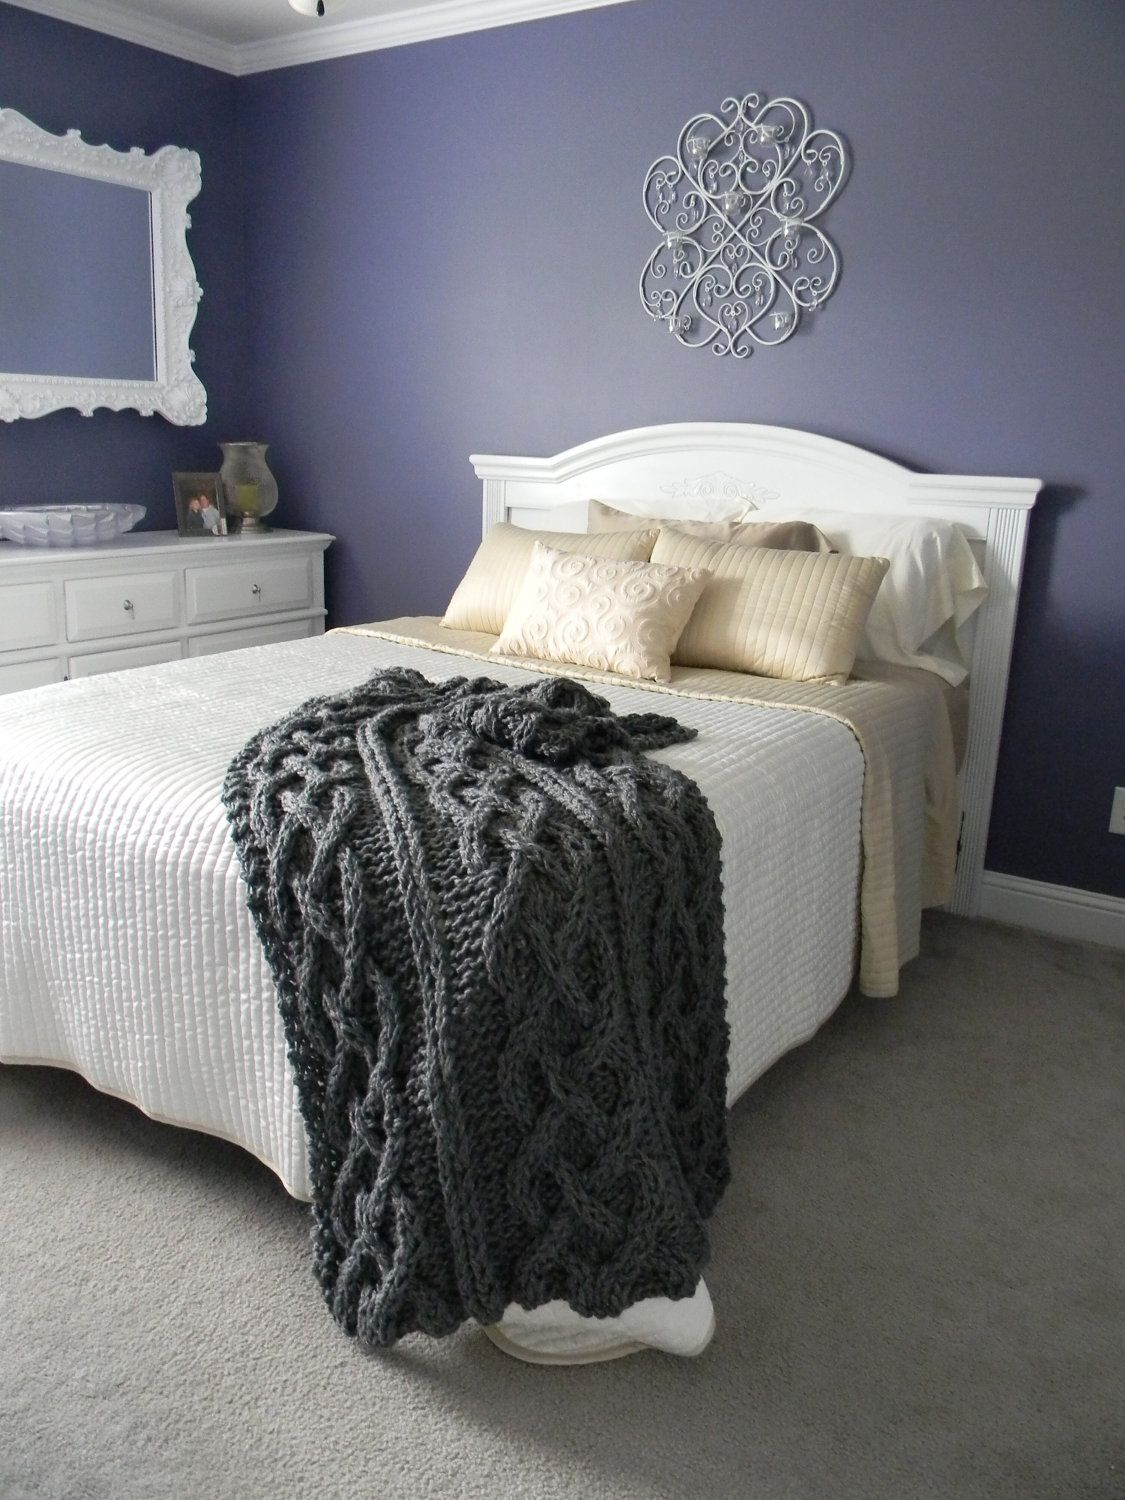 A pattern for that chunky knit throw floating around Pinterest ...